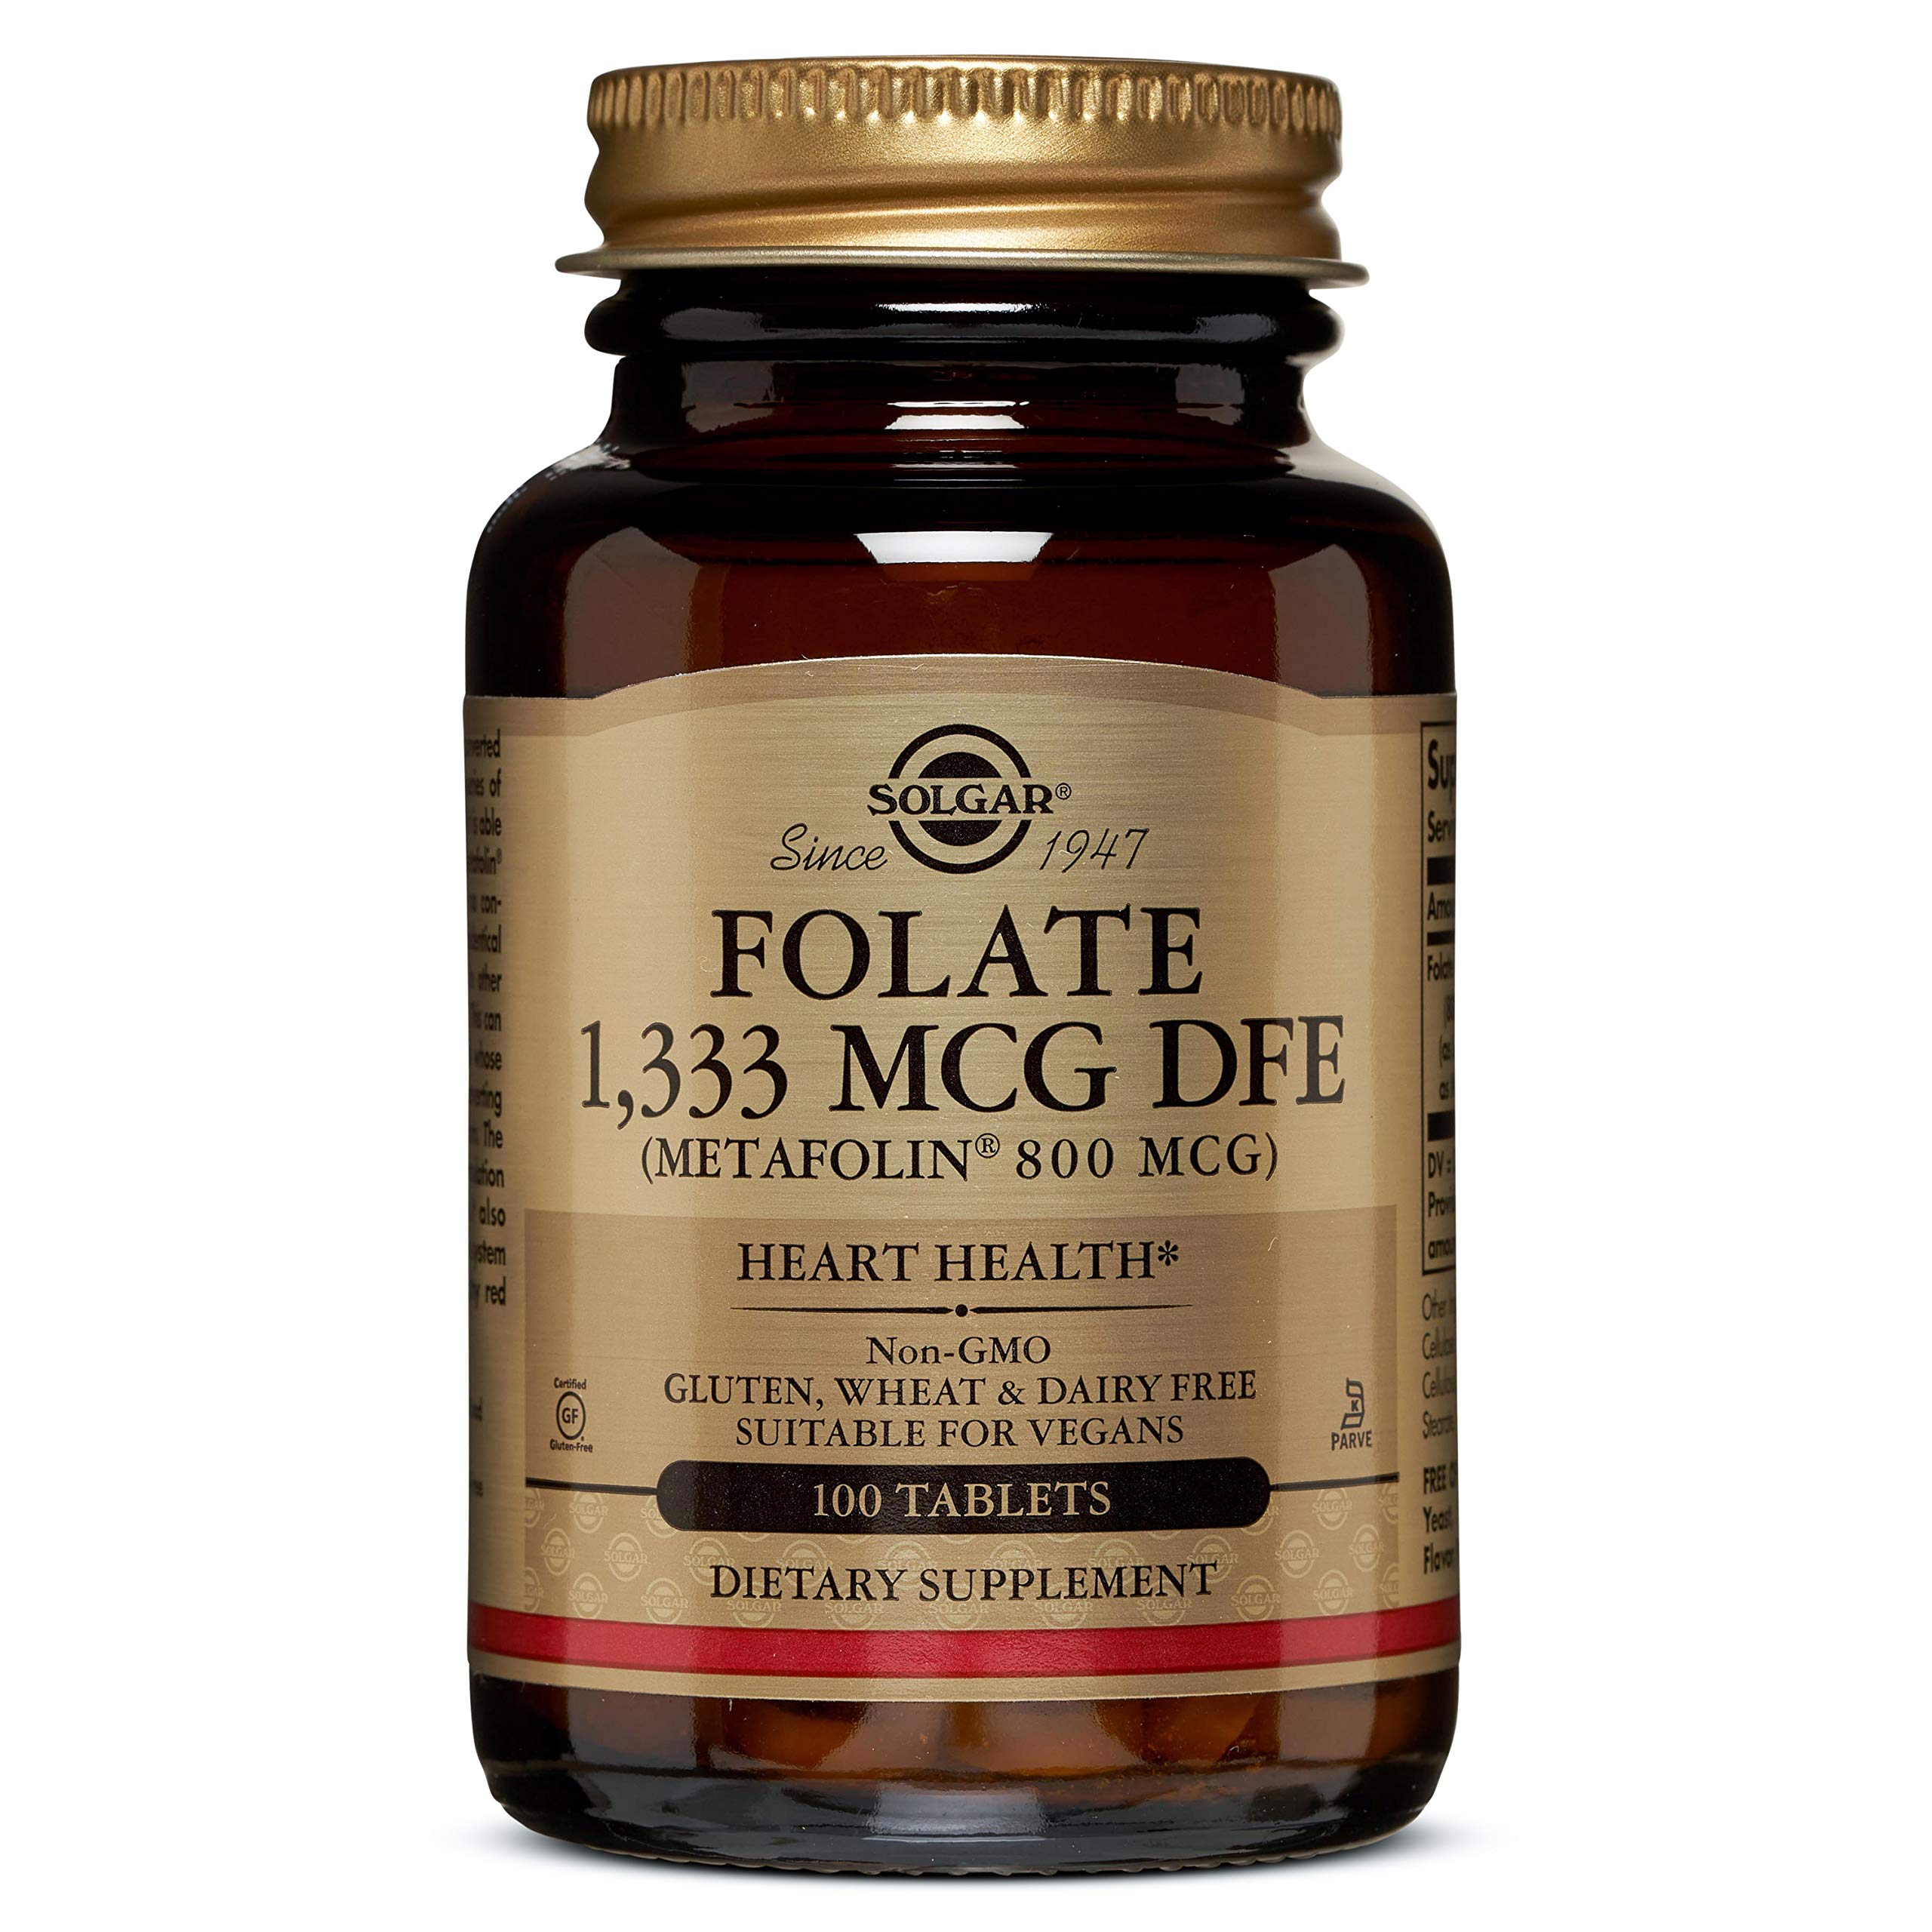 Solgar - Folate (as Metafolin) 800mcg Tablets, 100 Count, 2 Pack - Supports Heart and Nervous System Health